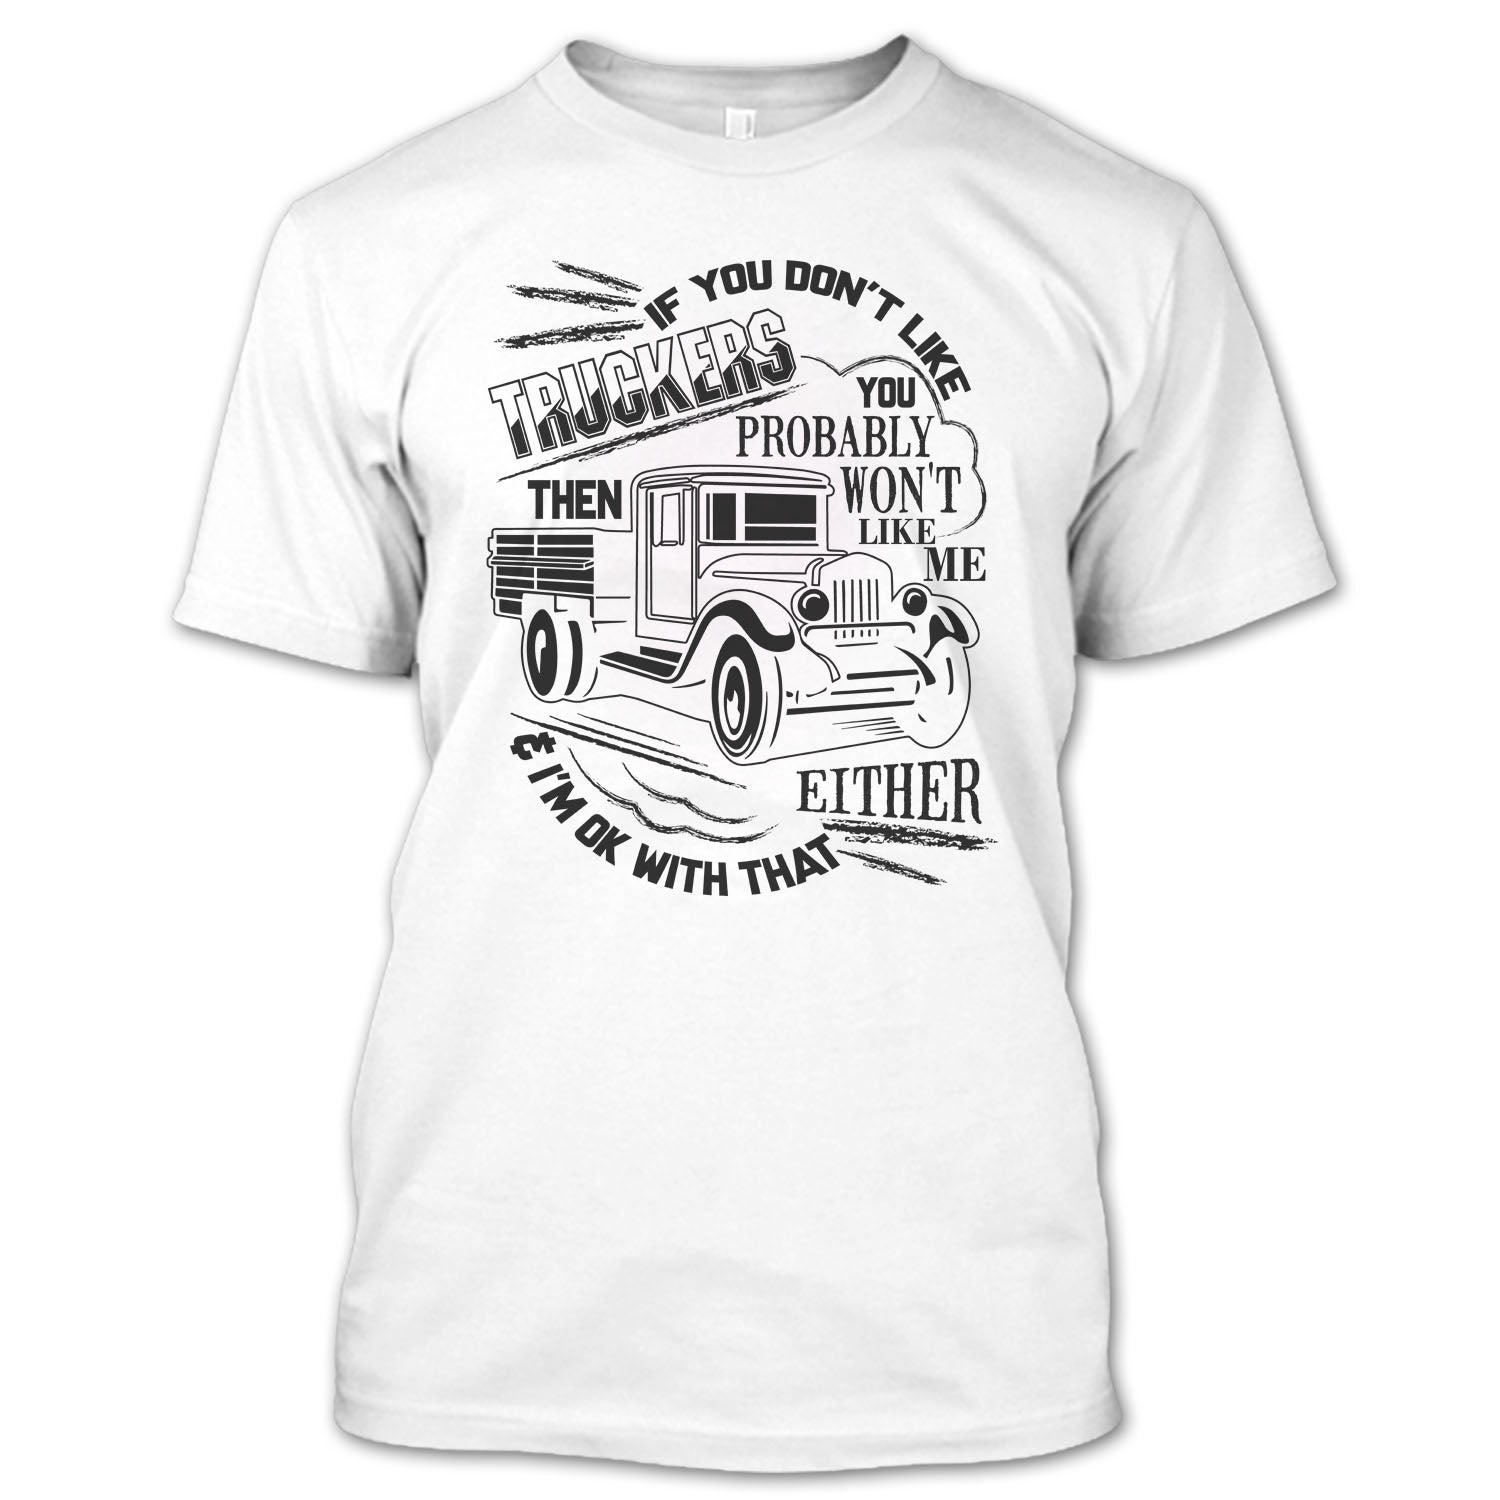 92a2d90f392e34 If You Don't Like Truckers T Shirt, Coolest Trucker Ever T Shirt ...